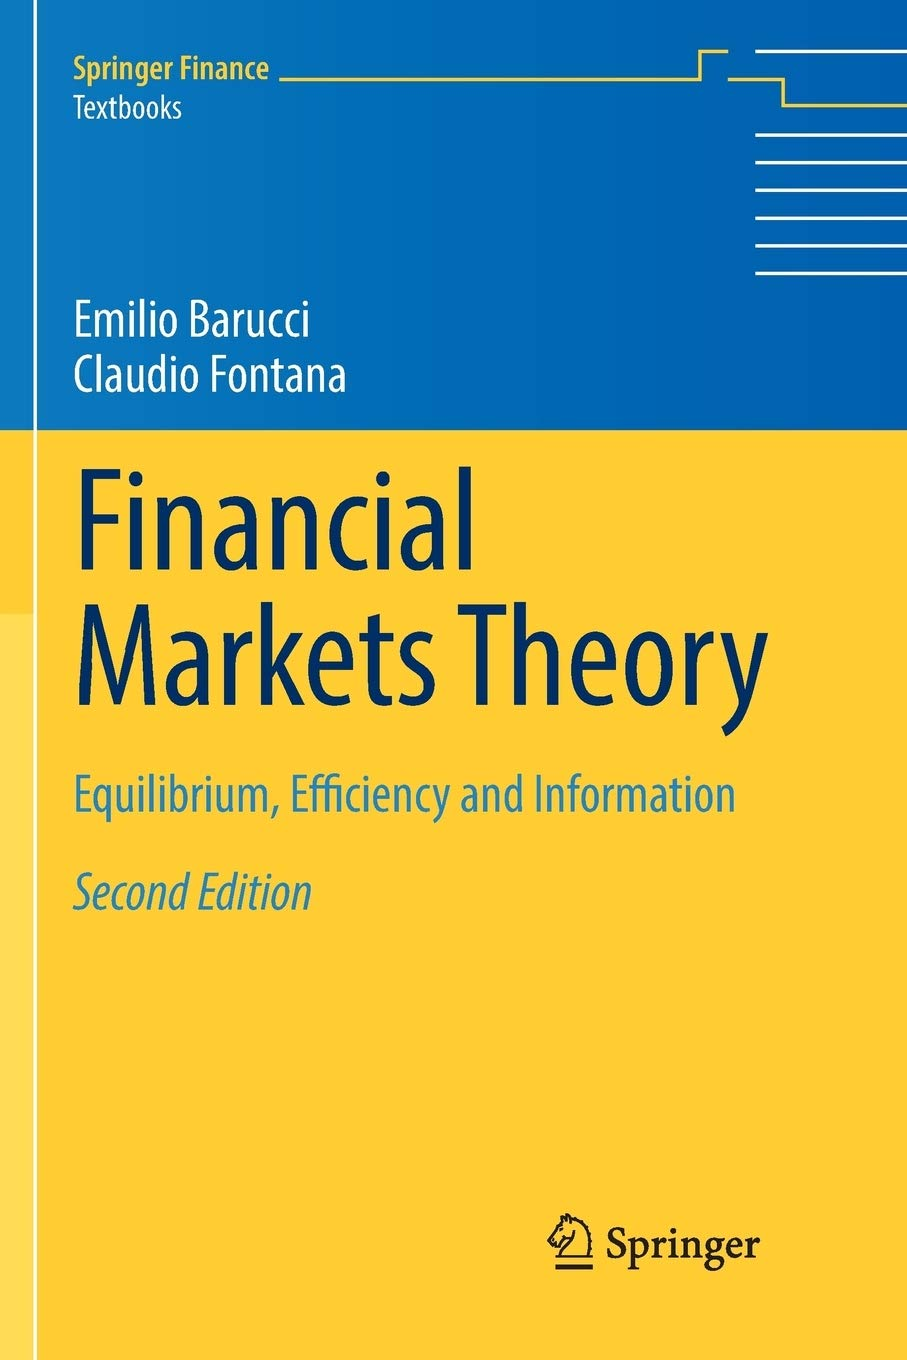 Download Financial Markets Theory: Equilibrium, Efficiency And Information (Springer Finance) 